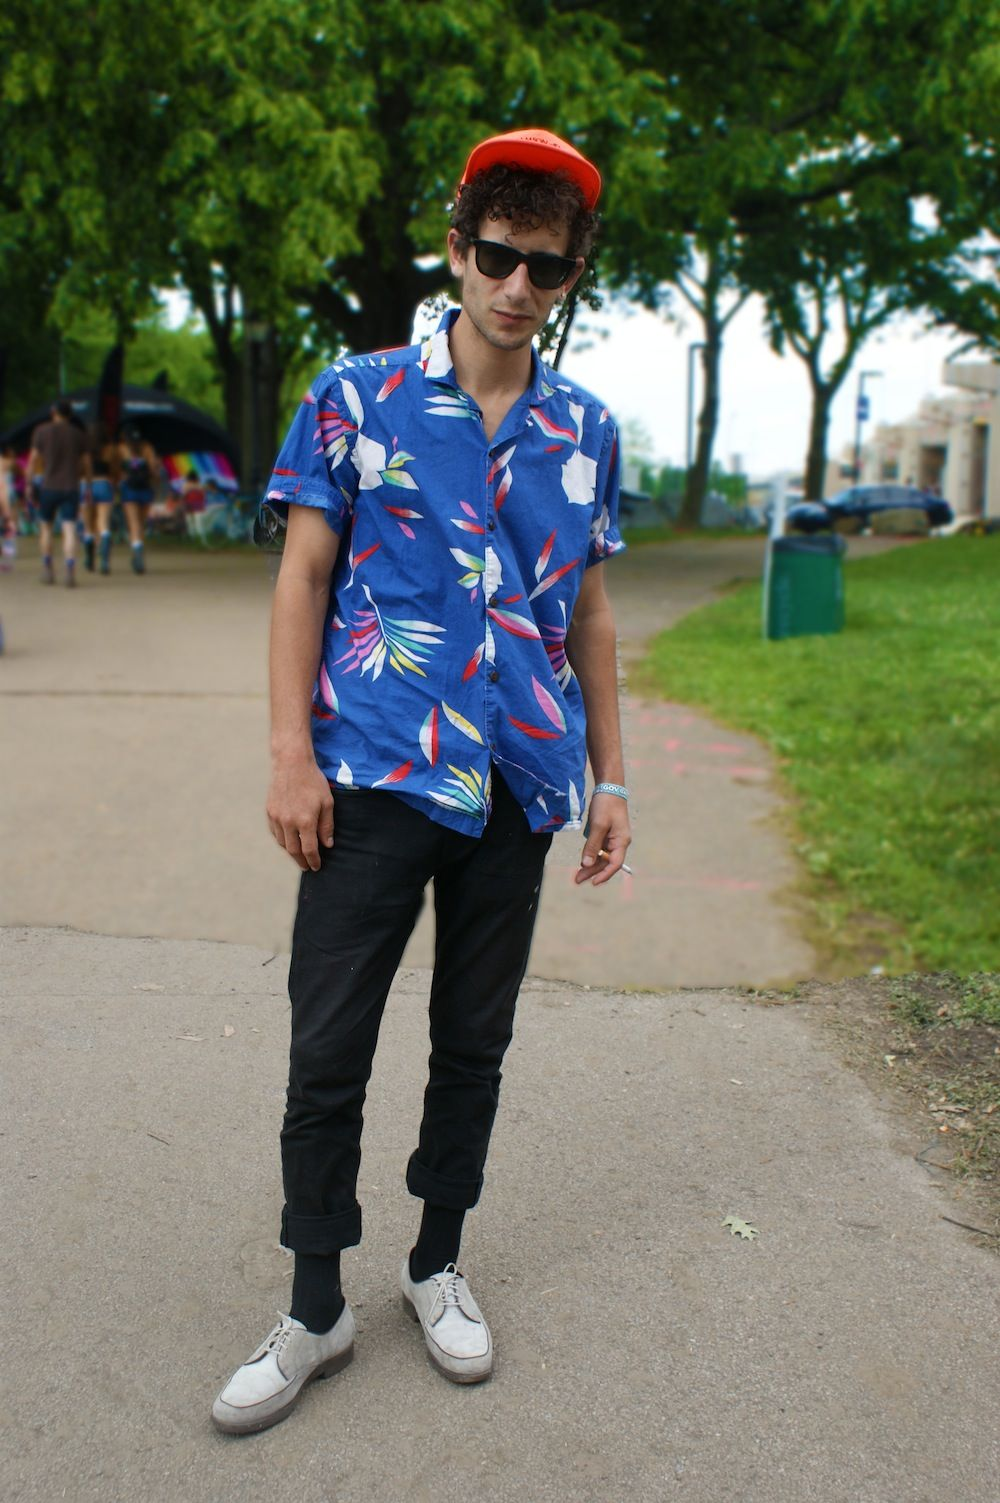 5dca9a36af91 men street style governors ball 2016 - Google Search